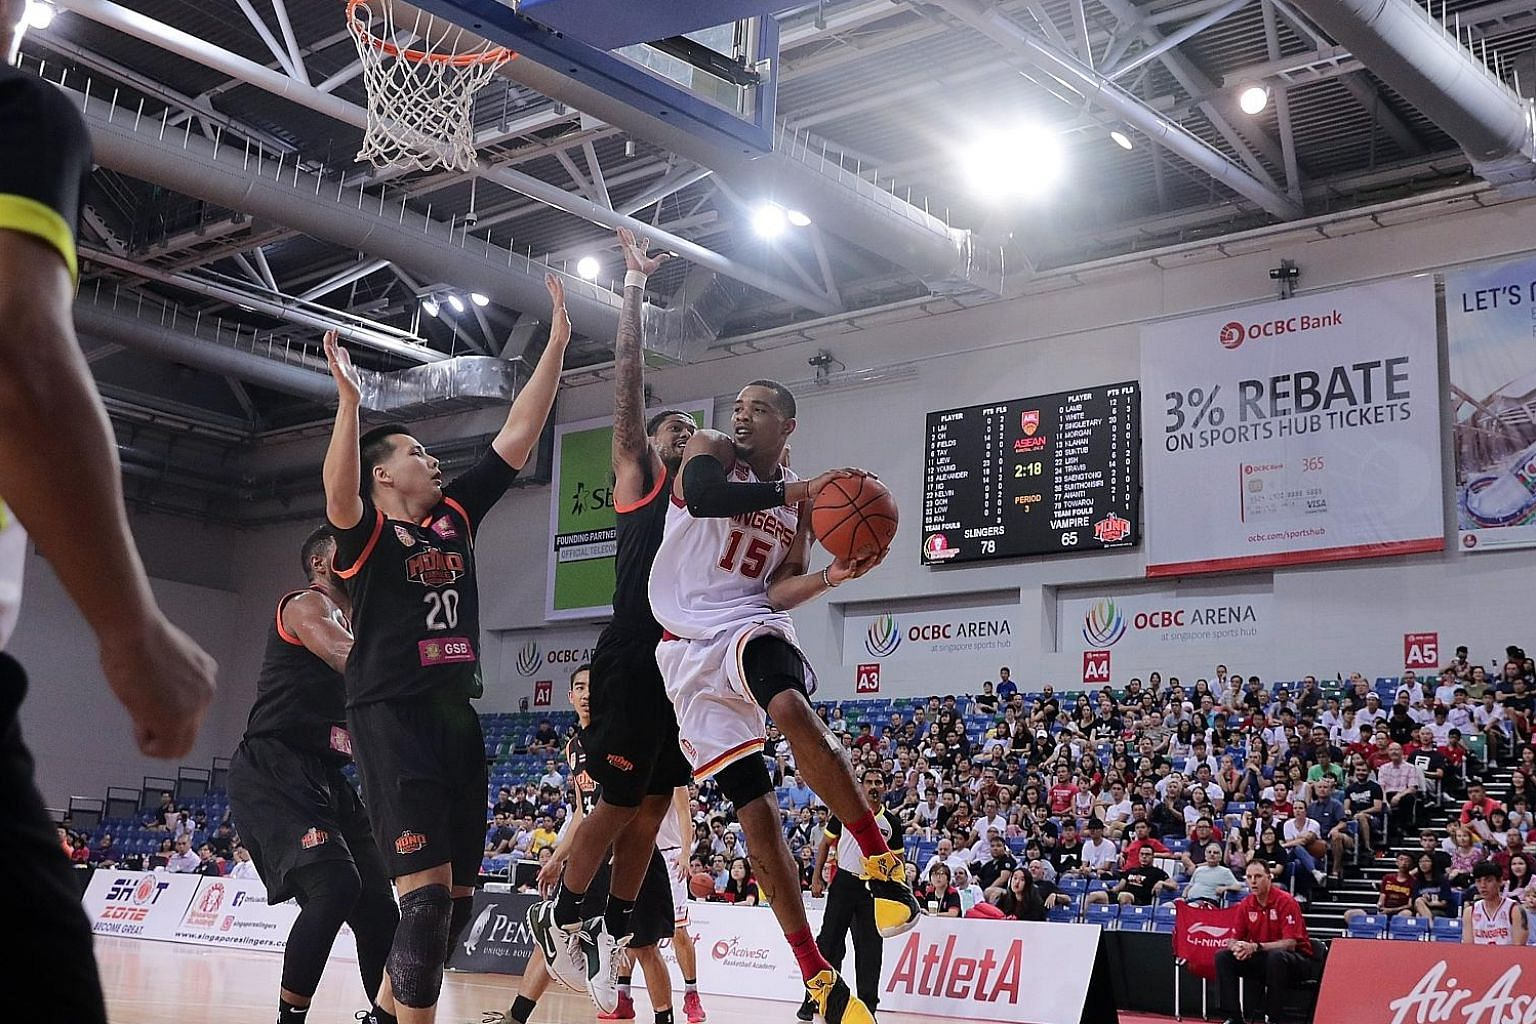 Left: The Singapore Slingers' Xavier Alexander proving a real handful for the Mono Vampire defence at the OCBC Arena on March 24, 2019. He scored 26 points to become the ABL's all-time leading scorer with 2,062 points. Above: The Slingers' Anthony Mc